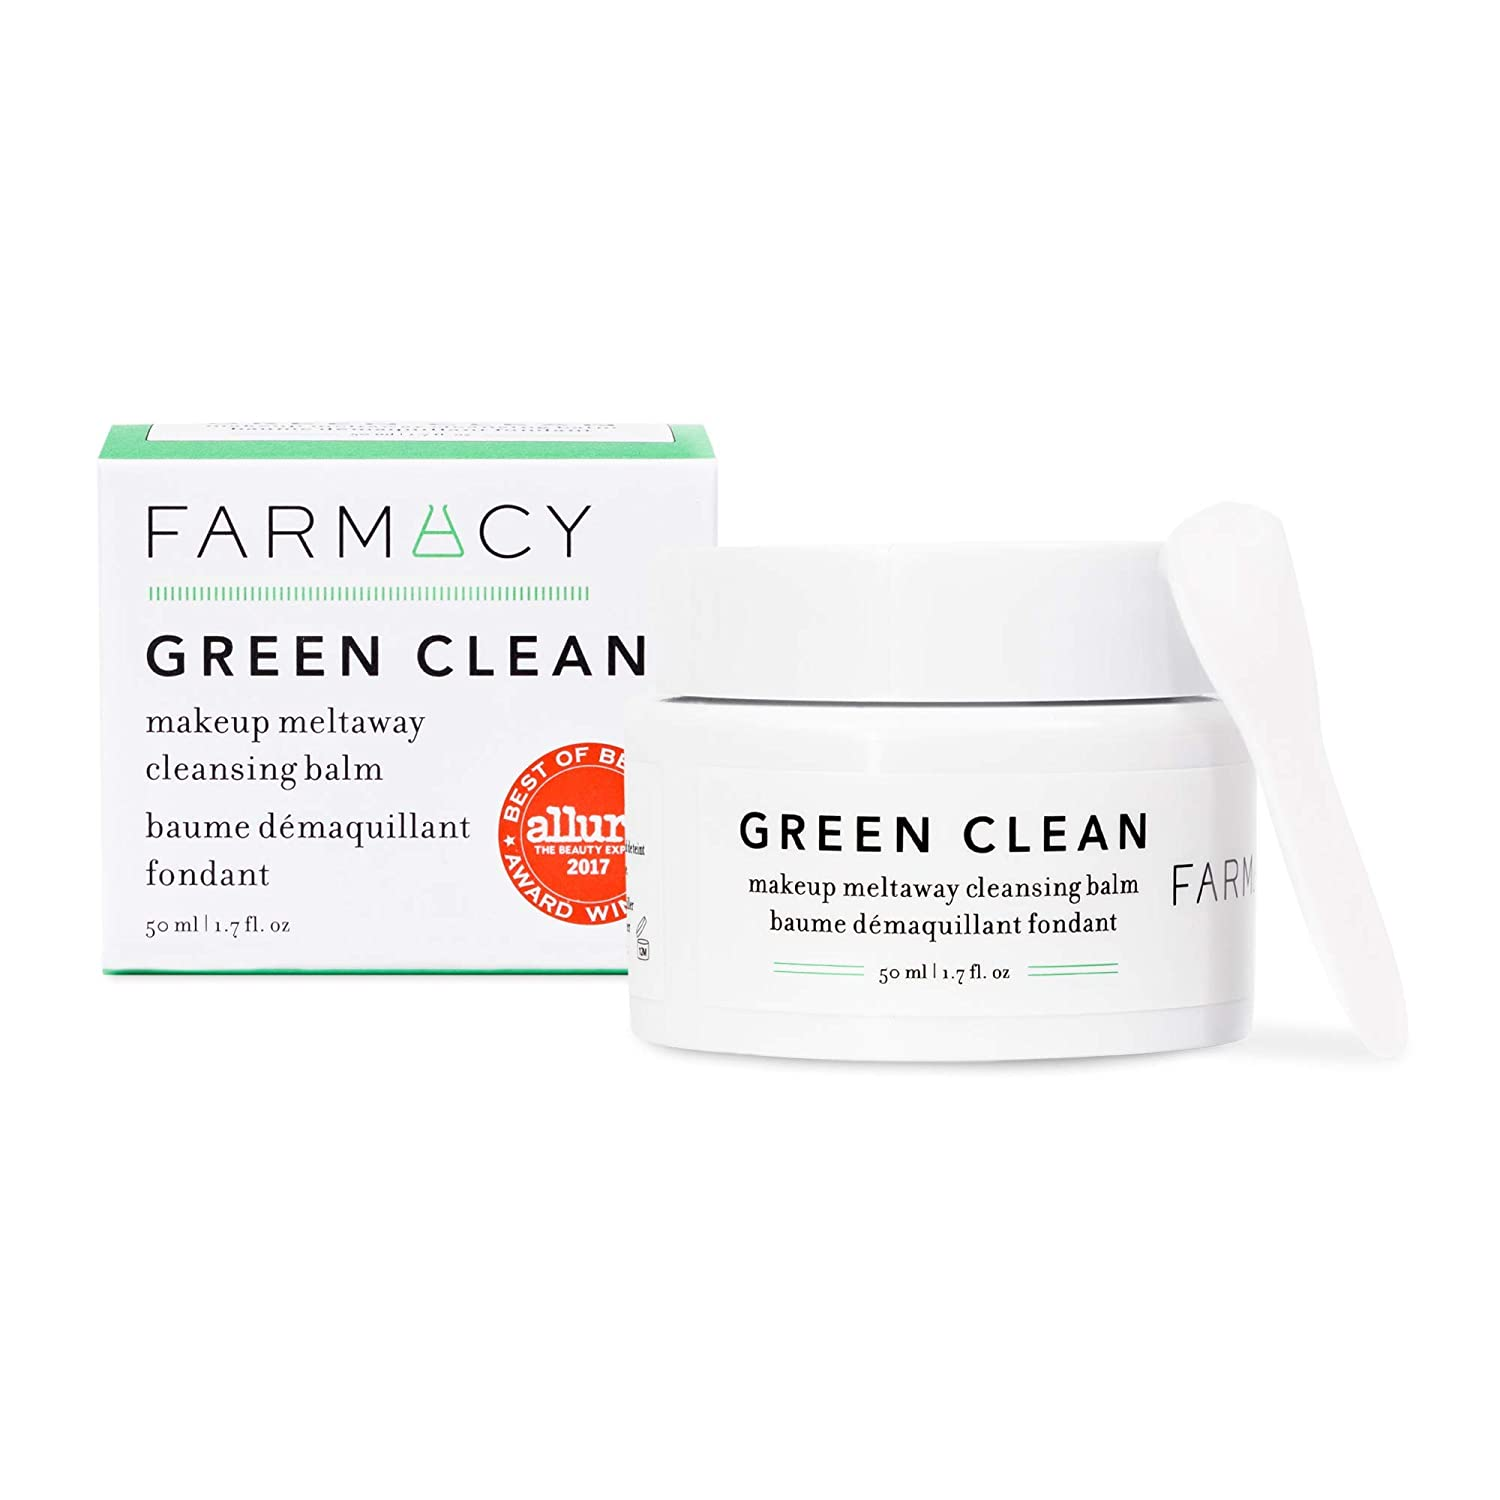 Farmacy Natural Makeup Remover - Green Clean Makeup Meltaway Cleansing Balm Cosmetic - Travel Size 1.7 oz : Beauty